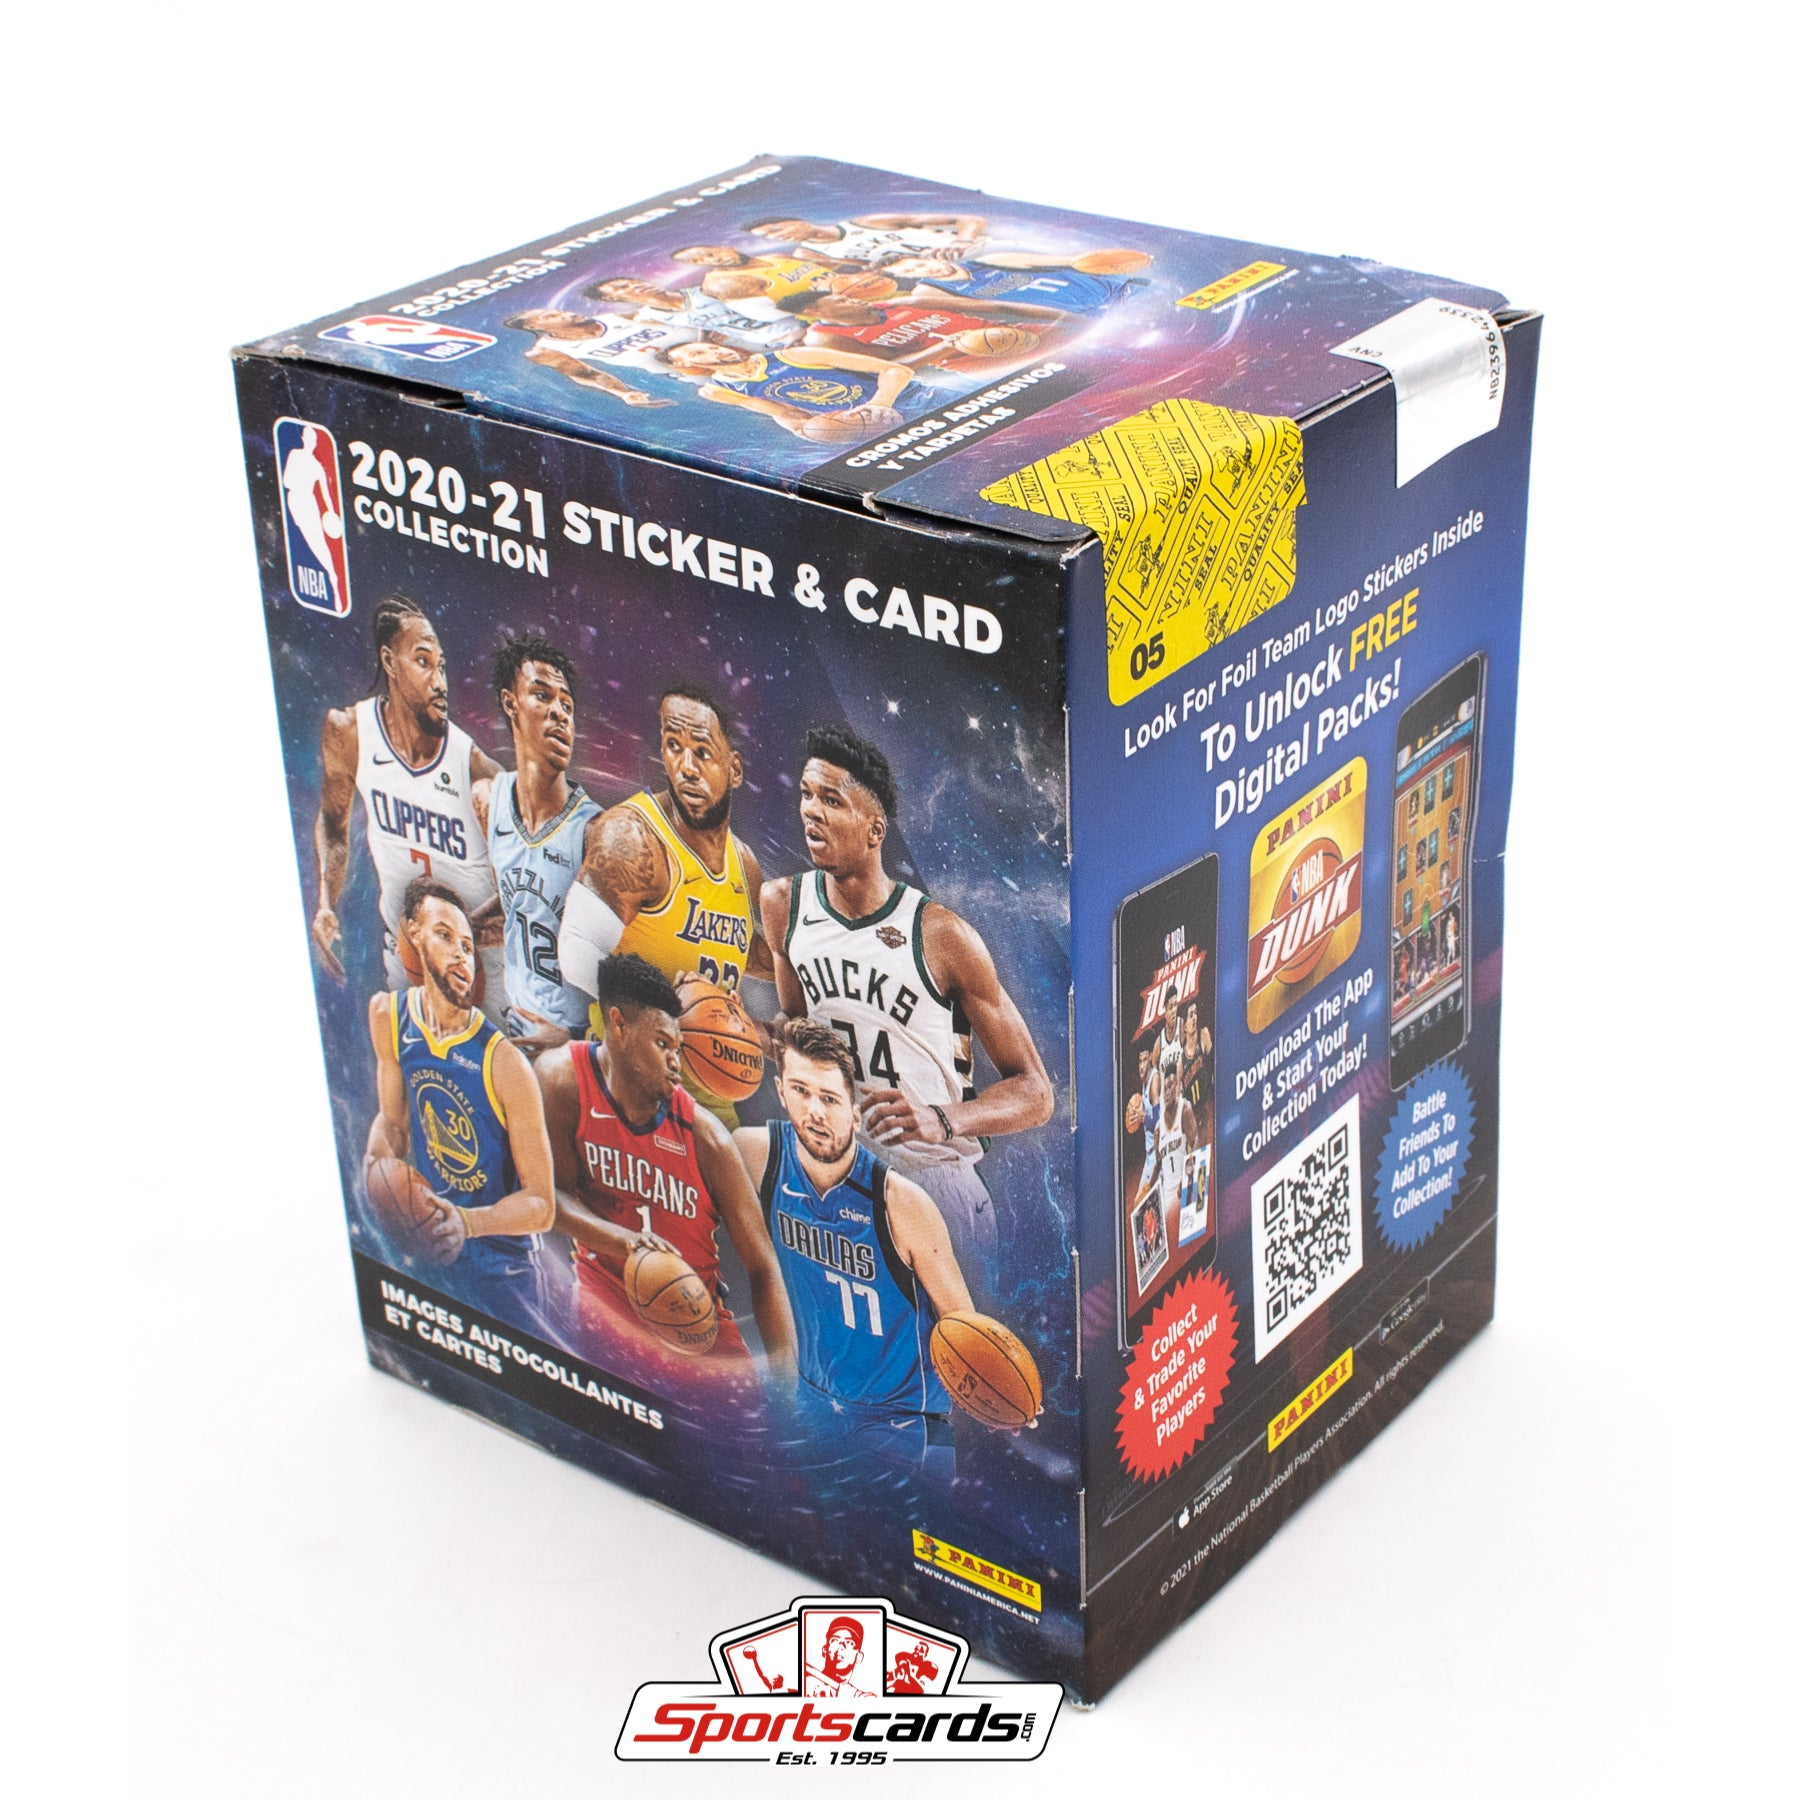 2020-21 Panini NBA Sticker & Card Factory Sealed Box - Find the LaMelo Ball RCs!